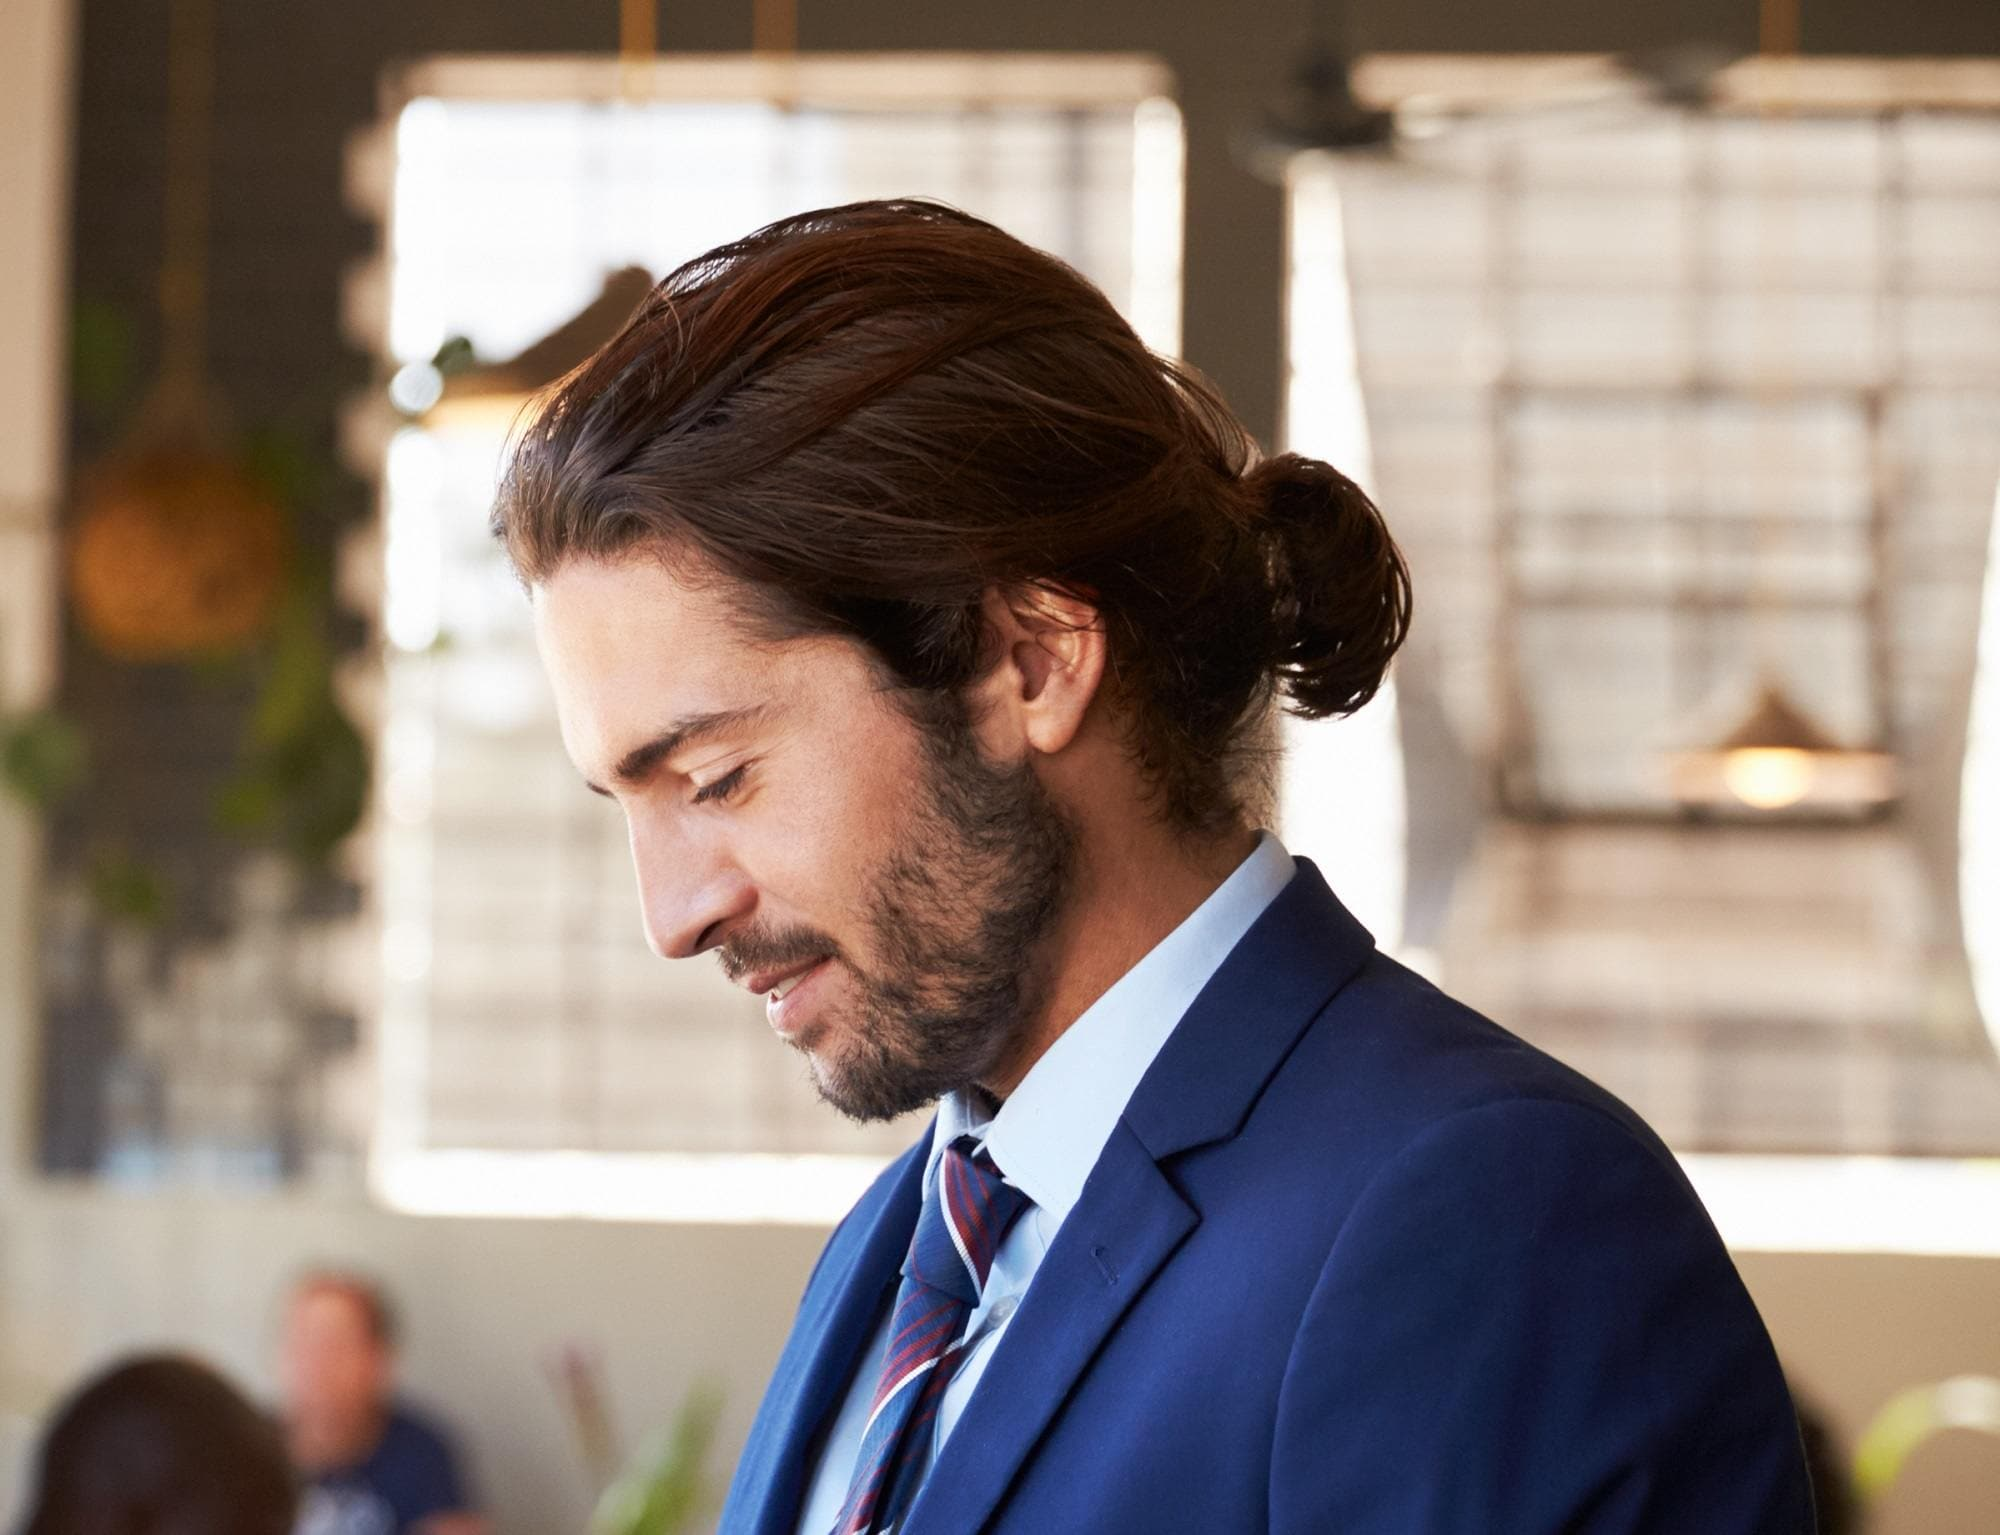 Man ponytail: Closeup side view shot of a man with brown hair in a low ponytail wearing a blue suit